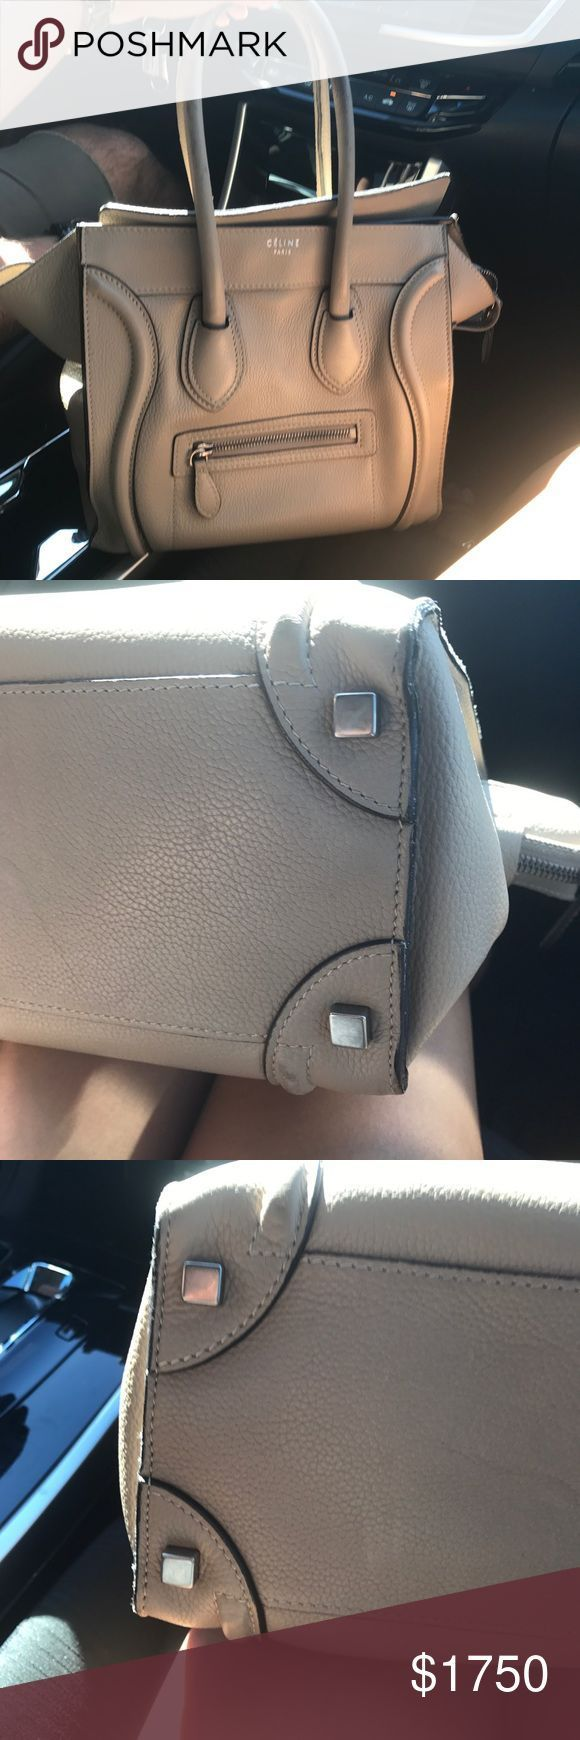 Tendance salopette 2017  Celine Micro Luggage Bag in Beige In good used condition. Has some wear but over